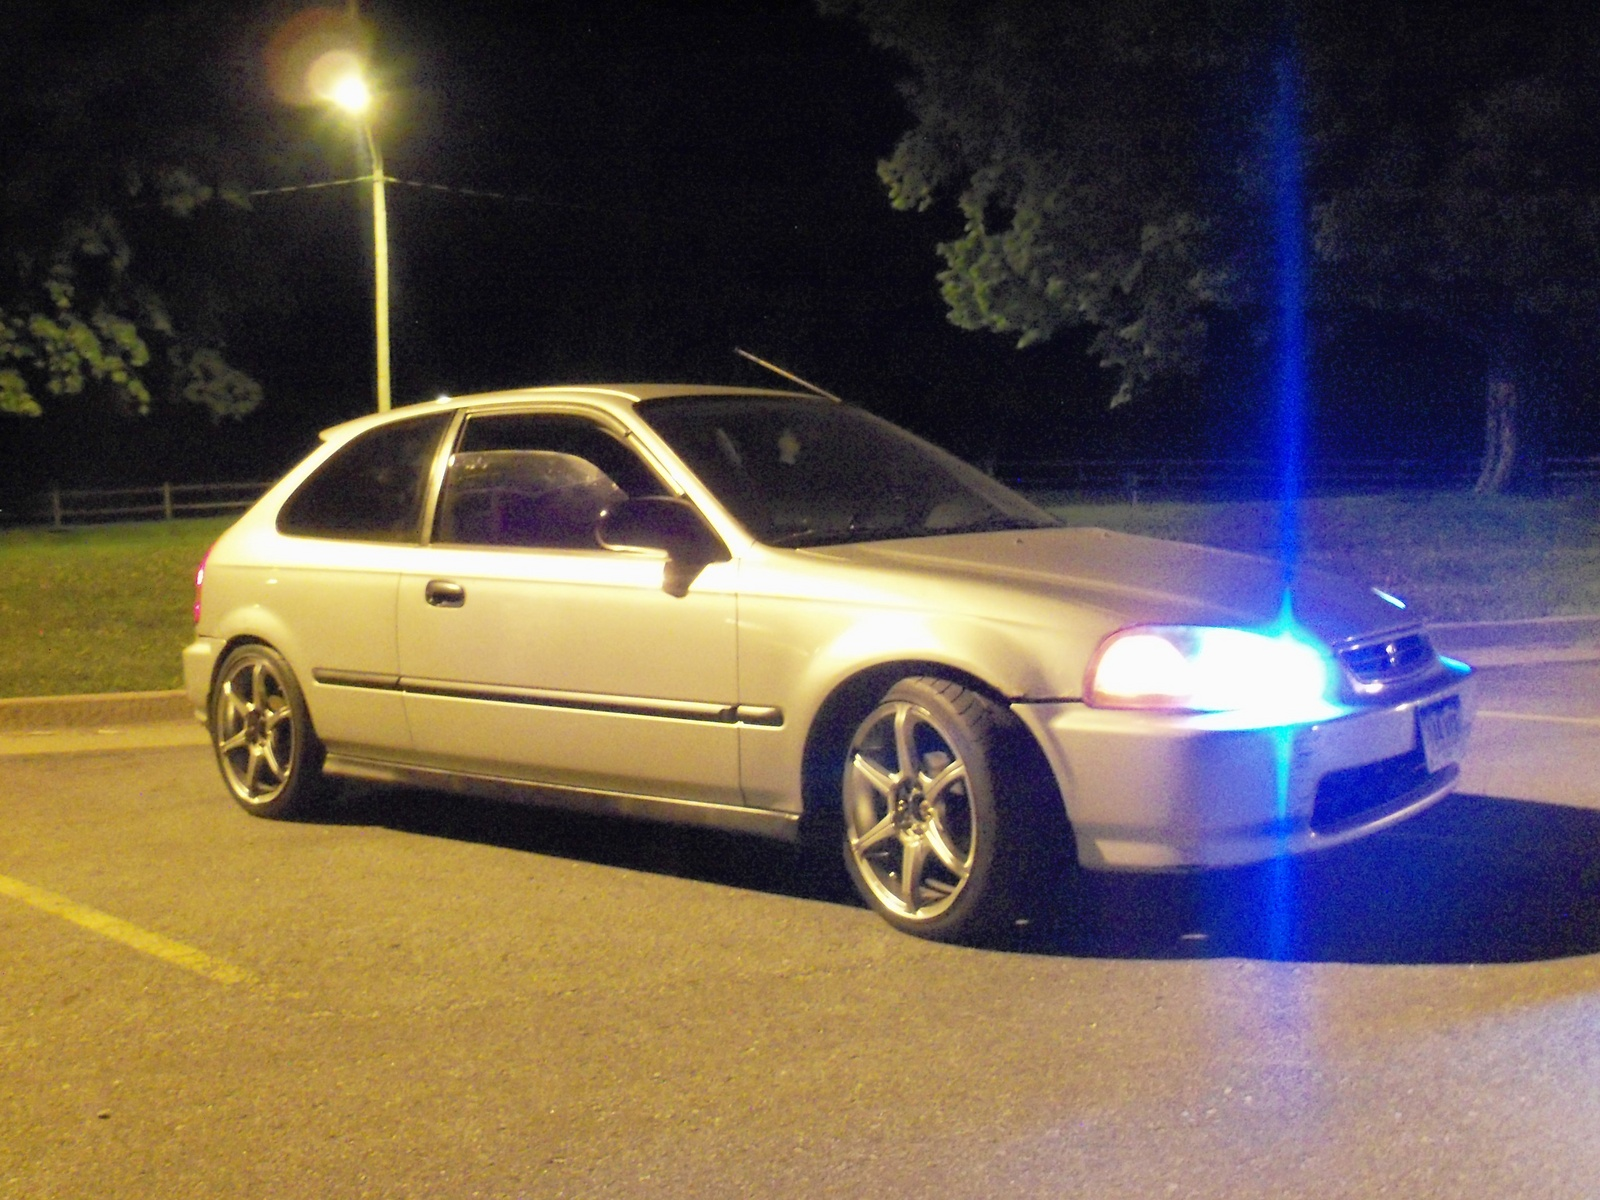 Picture of 1997 Honda Civic DX Hatchback, exterior